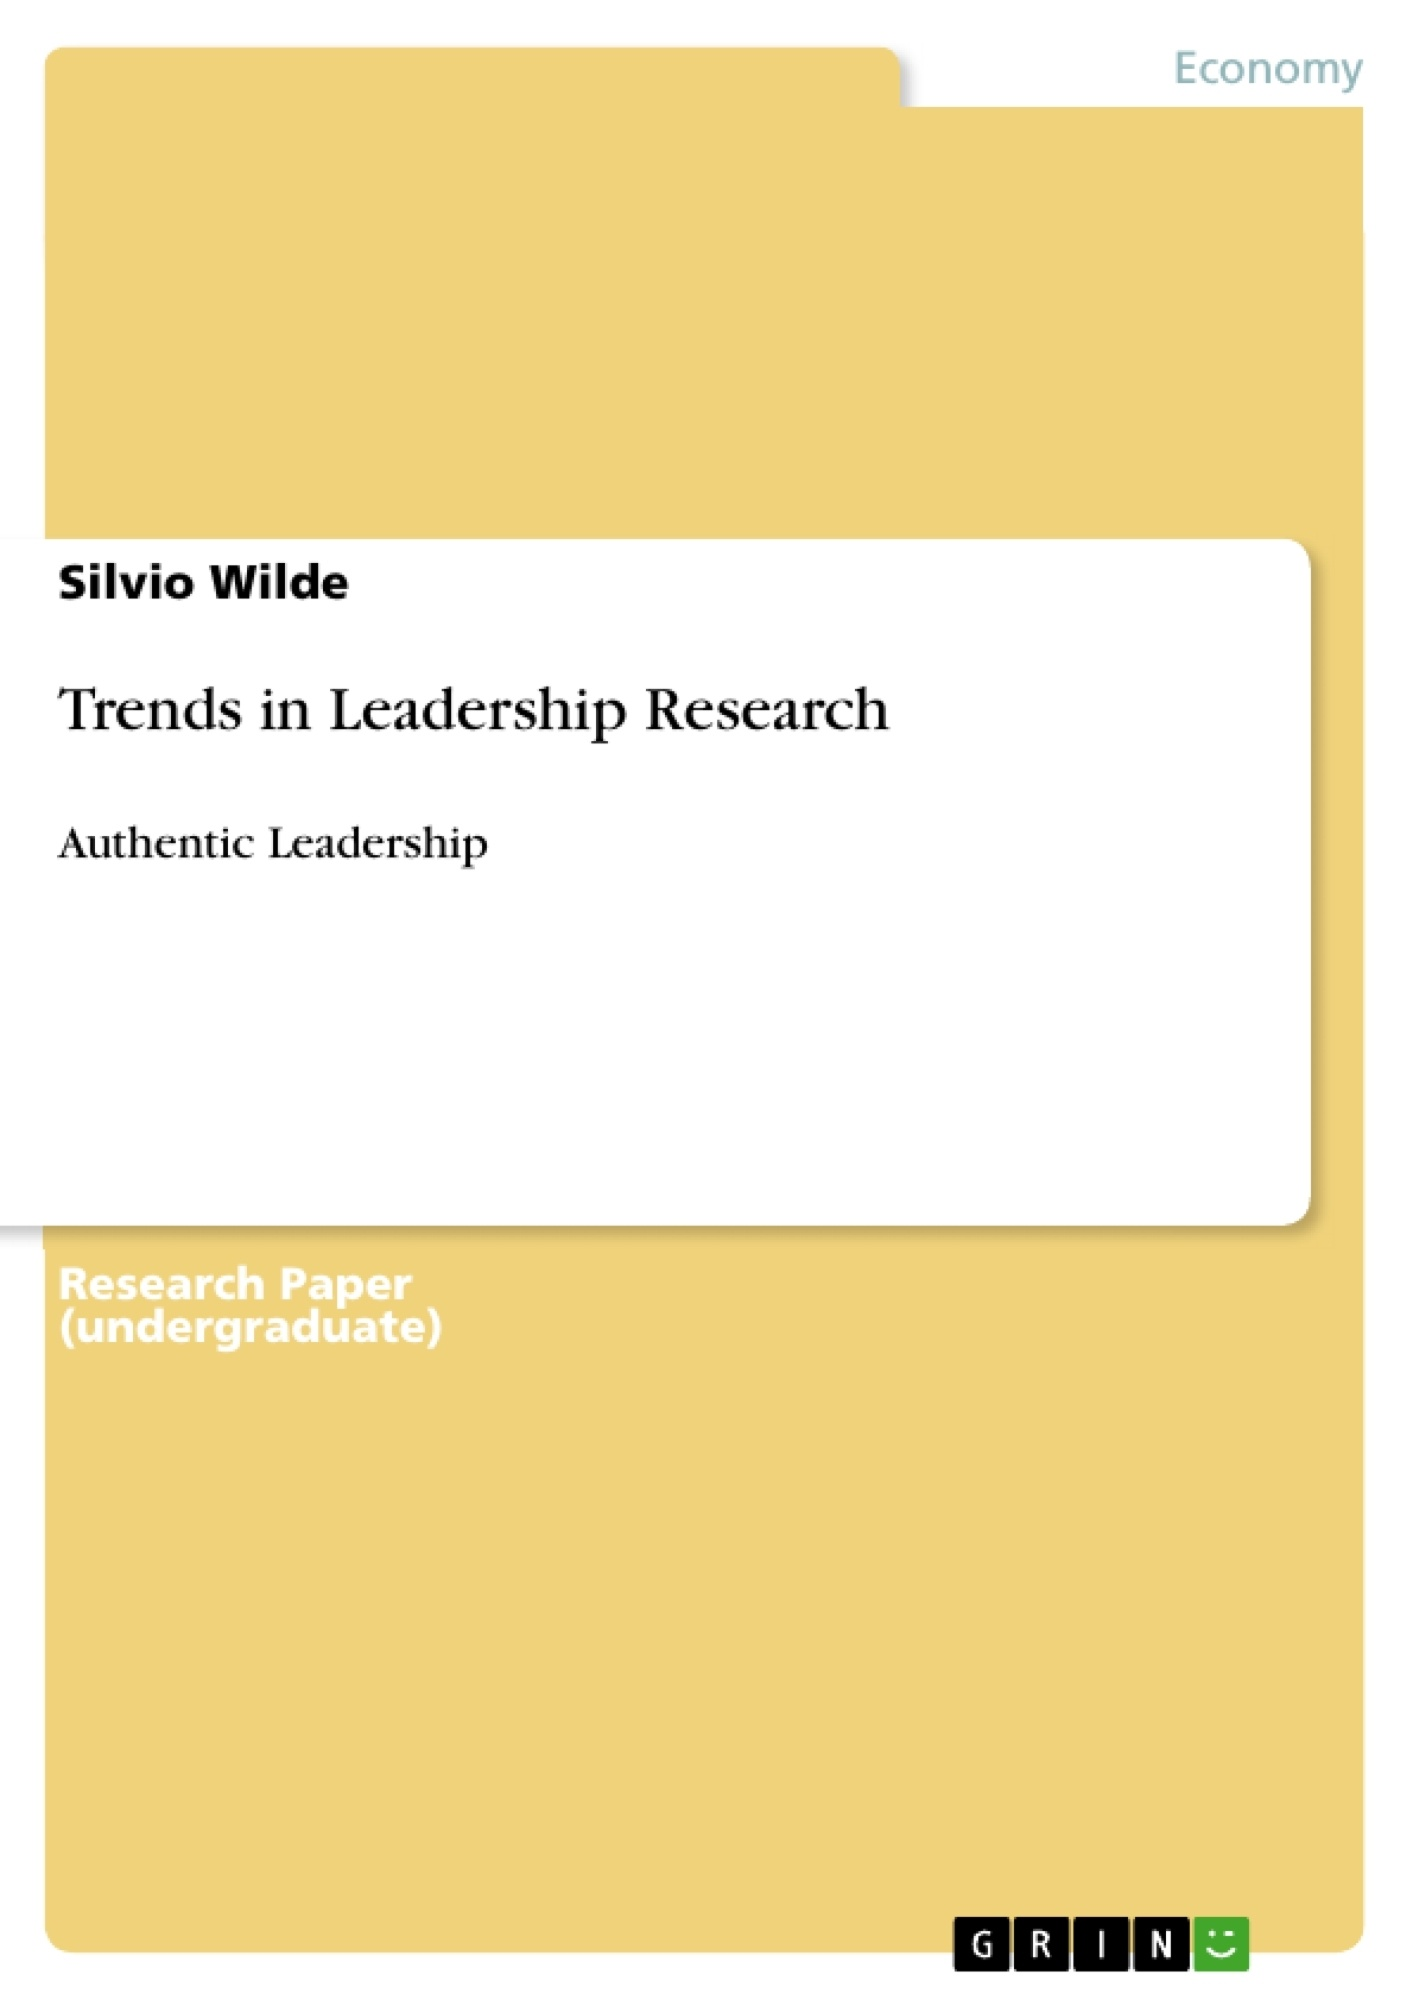 Title: Trends in Leadership Research